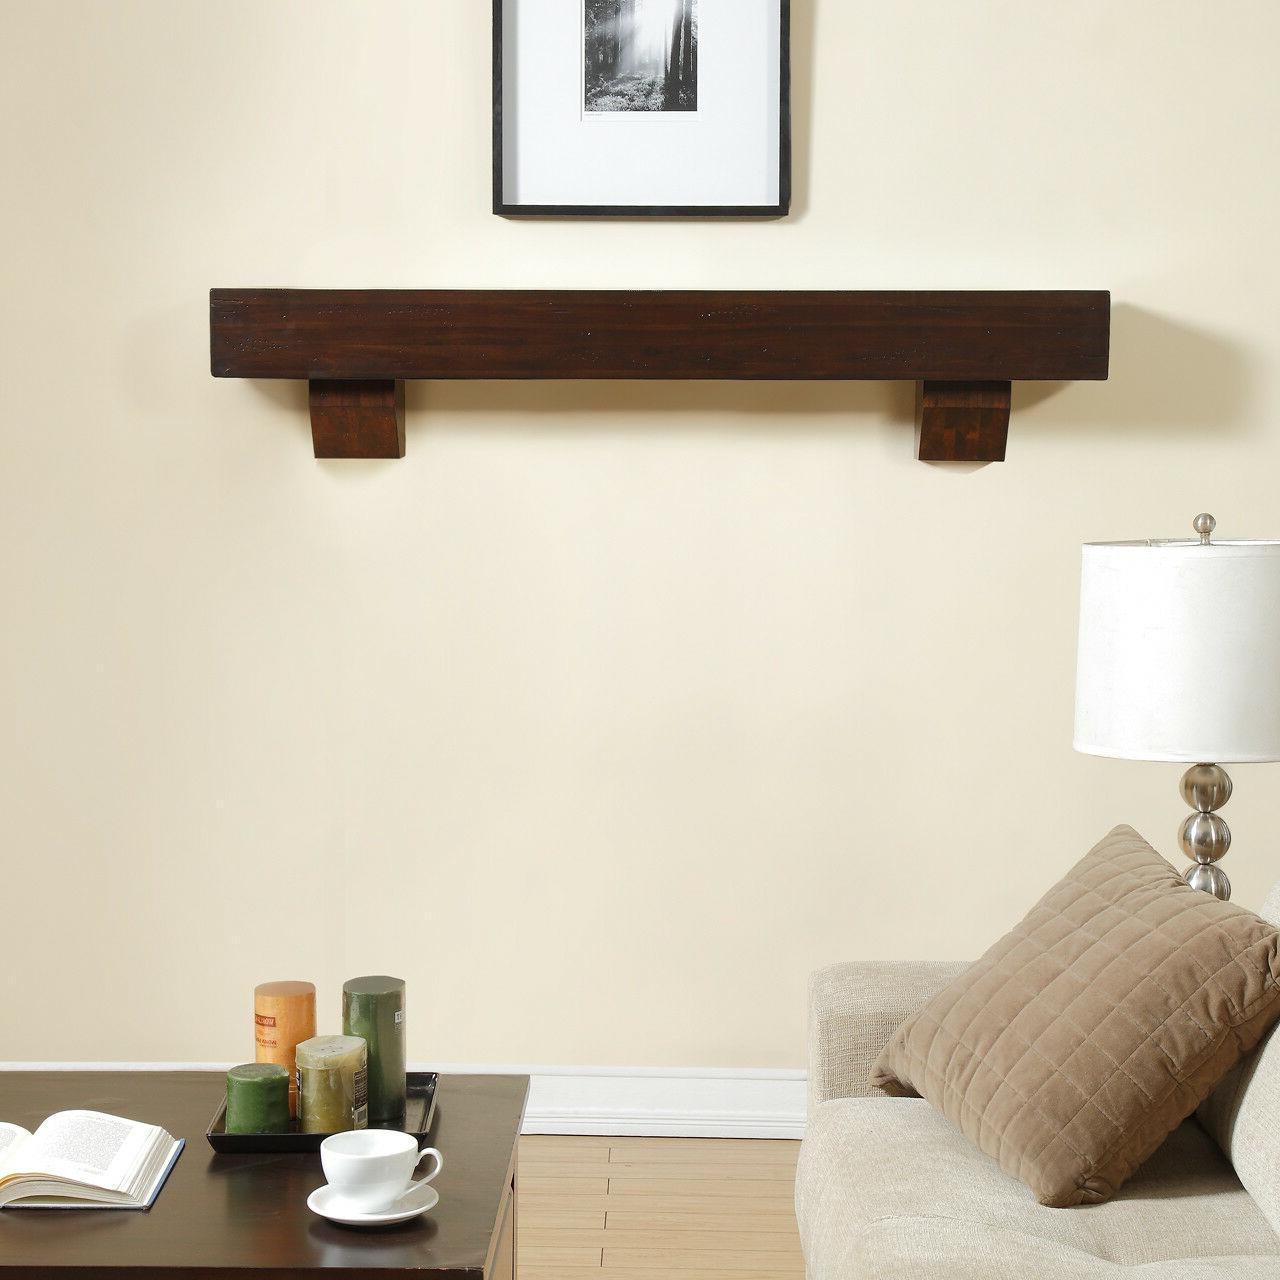 60 inch fireplace shelf mantel with corbels